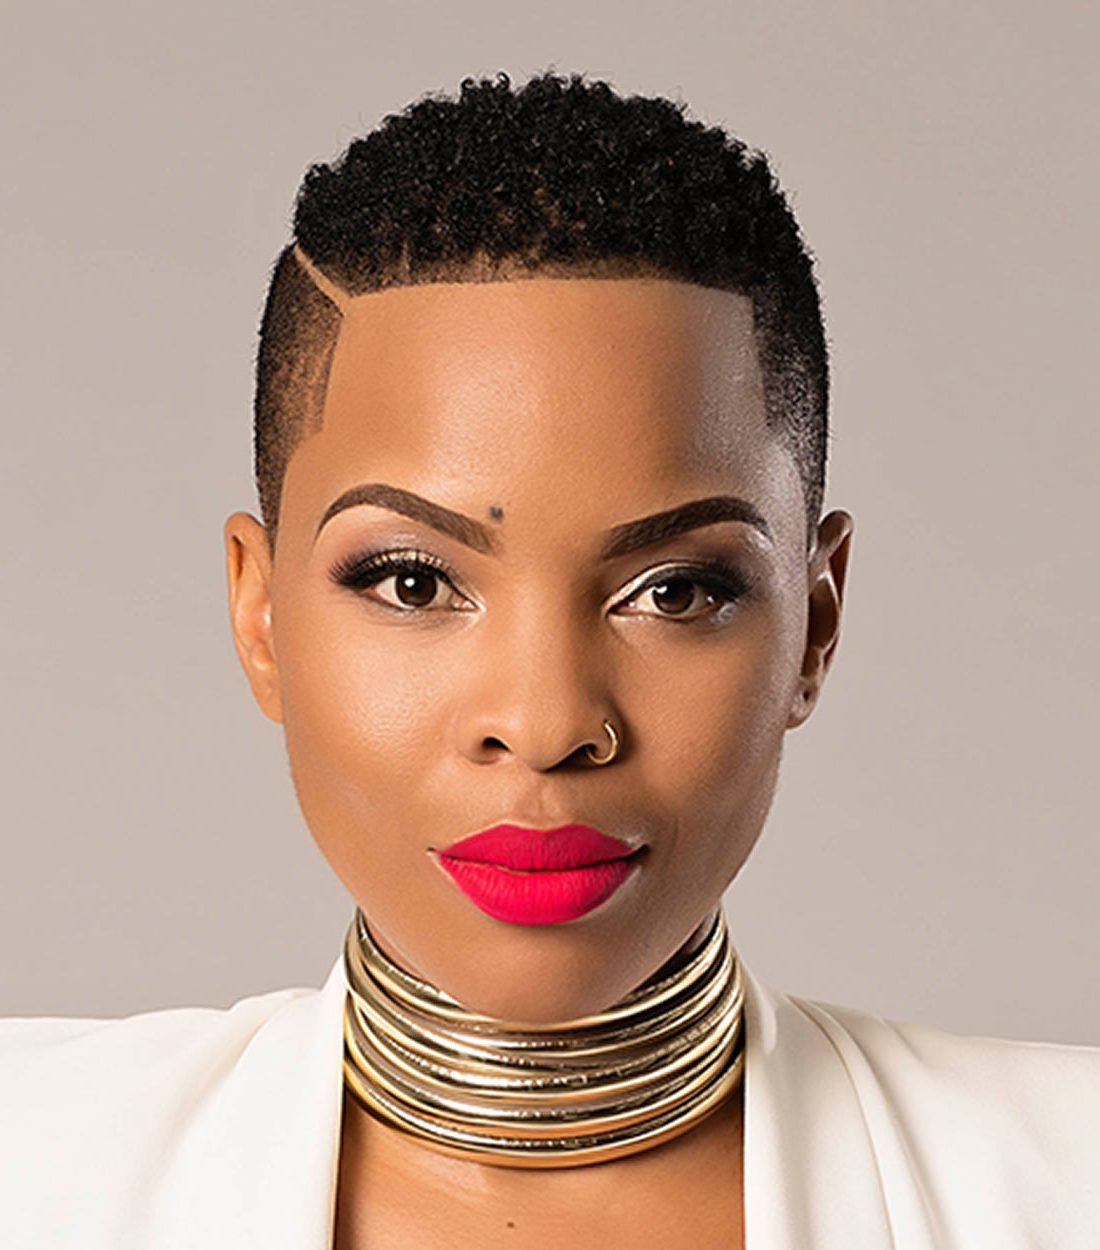 32 Exquisite African American Short Haircuts And Hairstyles For 2018 Throughout Short Hairstyles For African Hair (View 2 of 25)